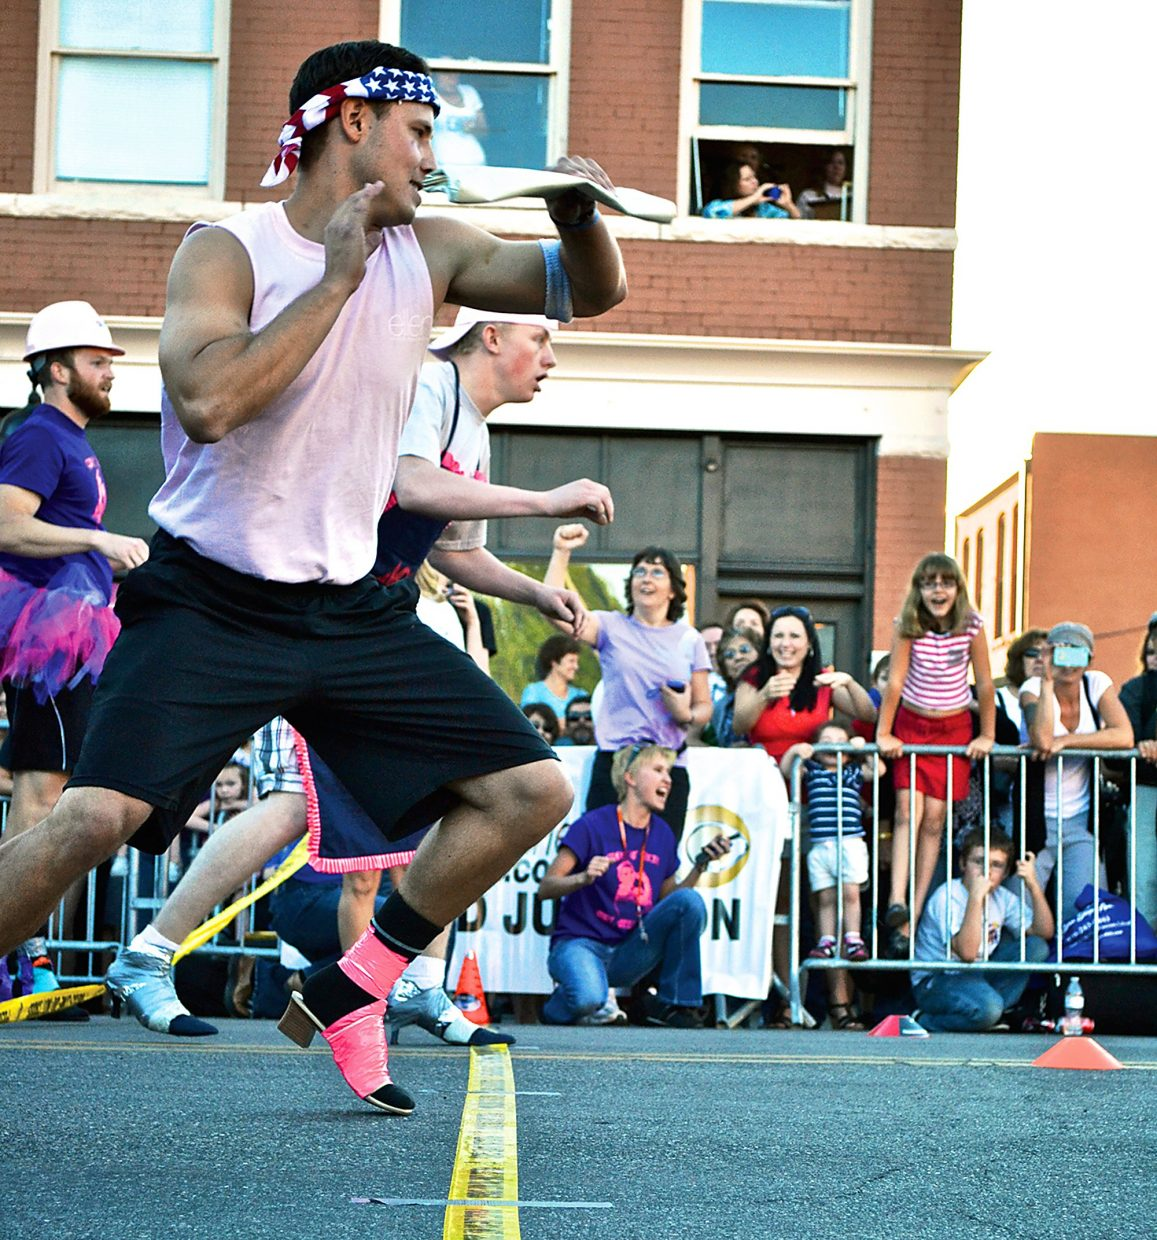 Spectators cheer on participantsat last year's Men in Heels race, which raised more than $32,000. This year event organizers hope to collect $40,000 or more.